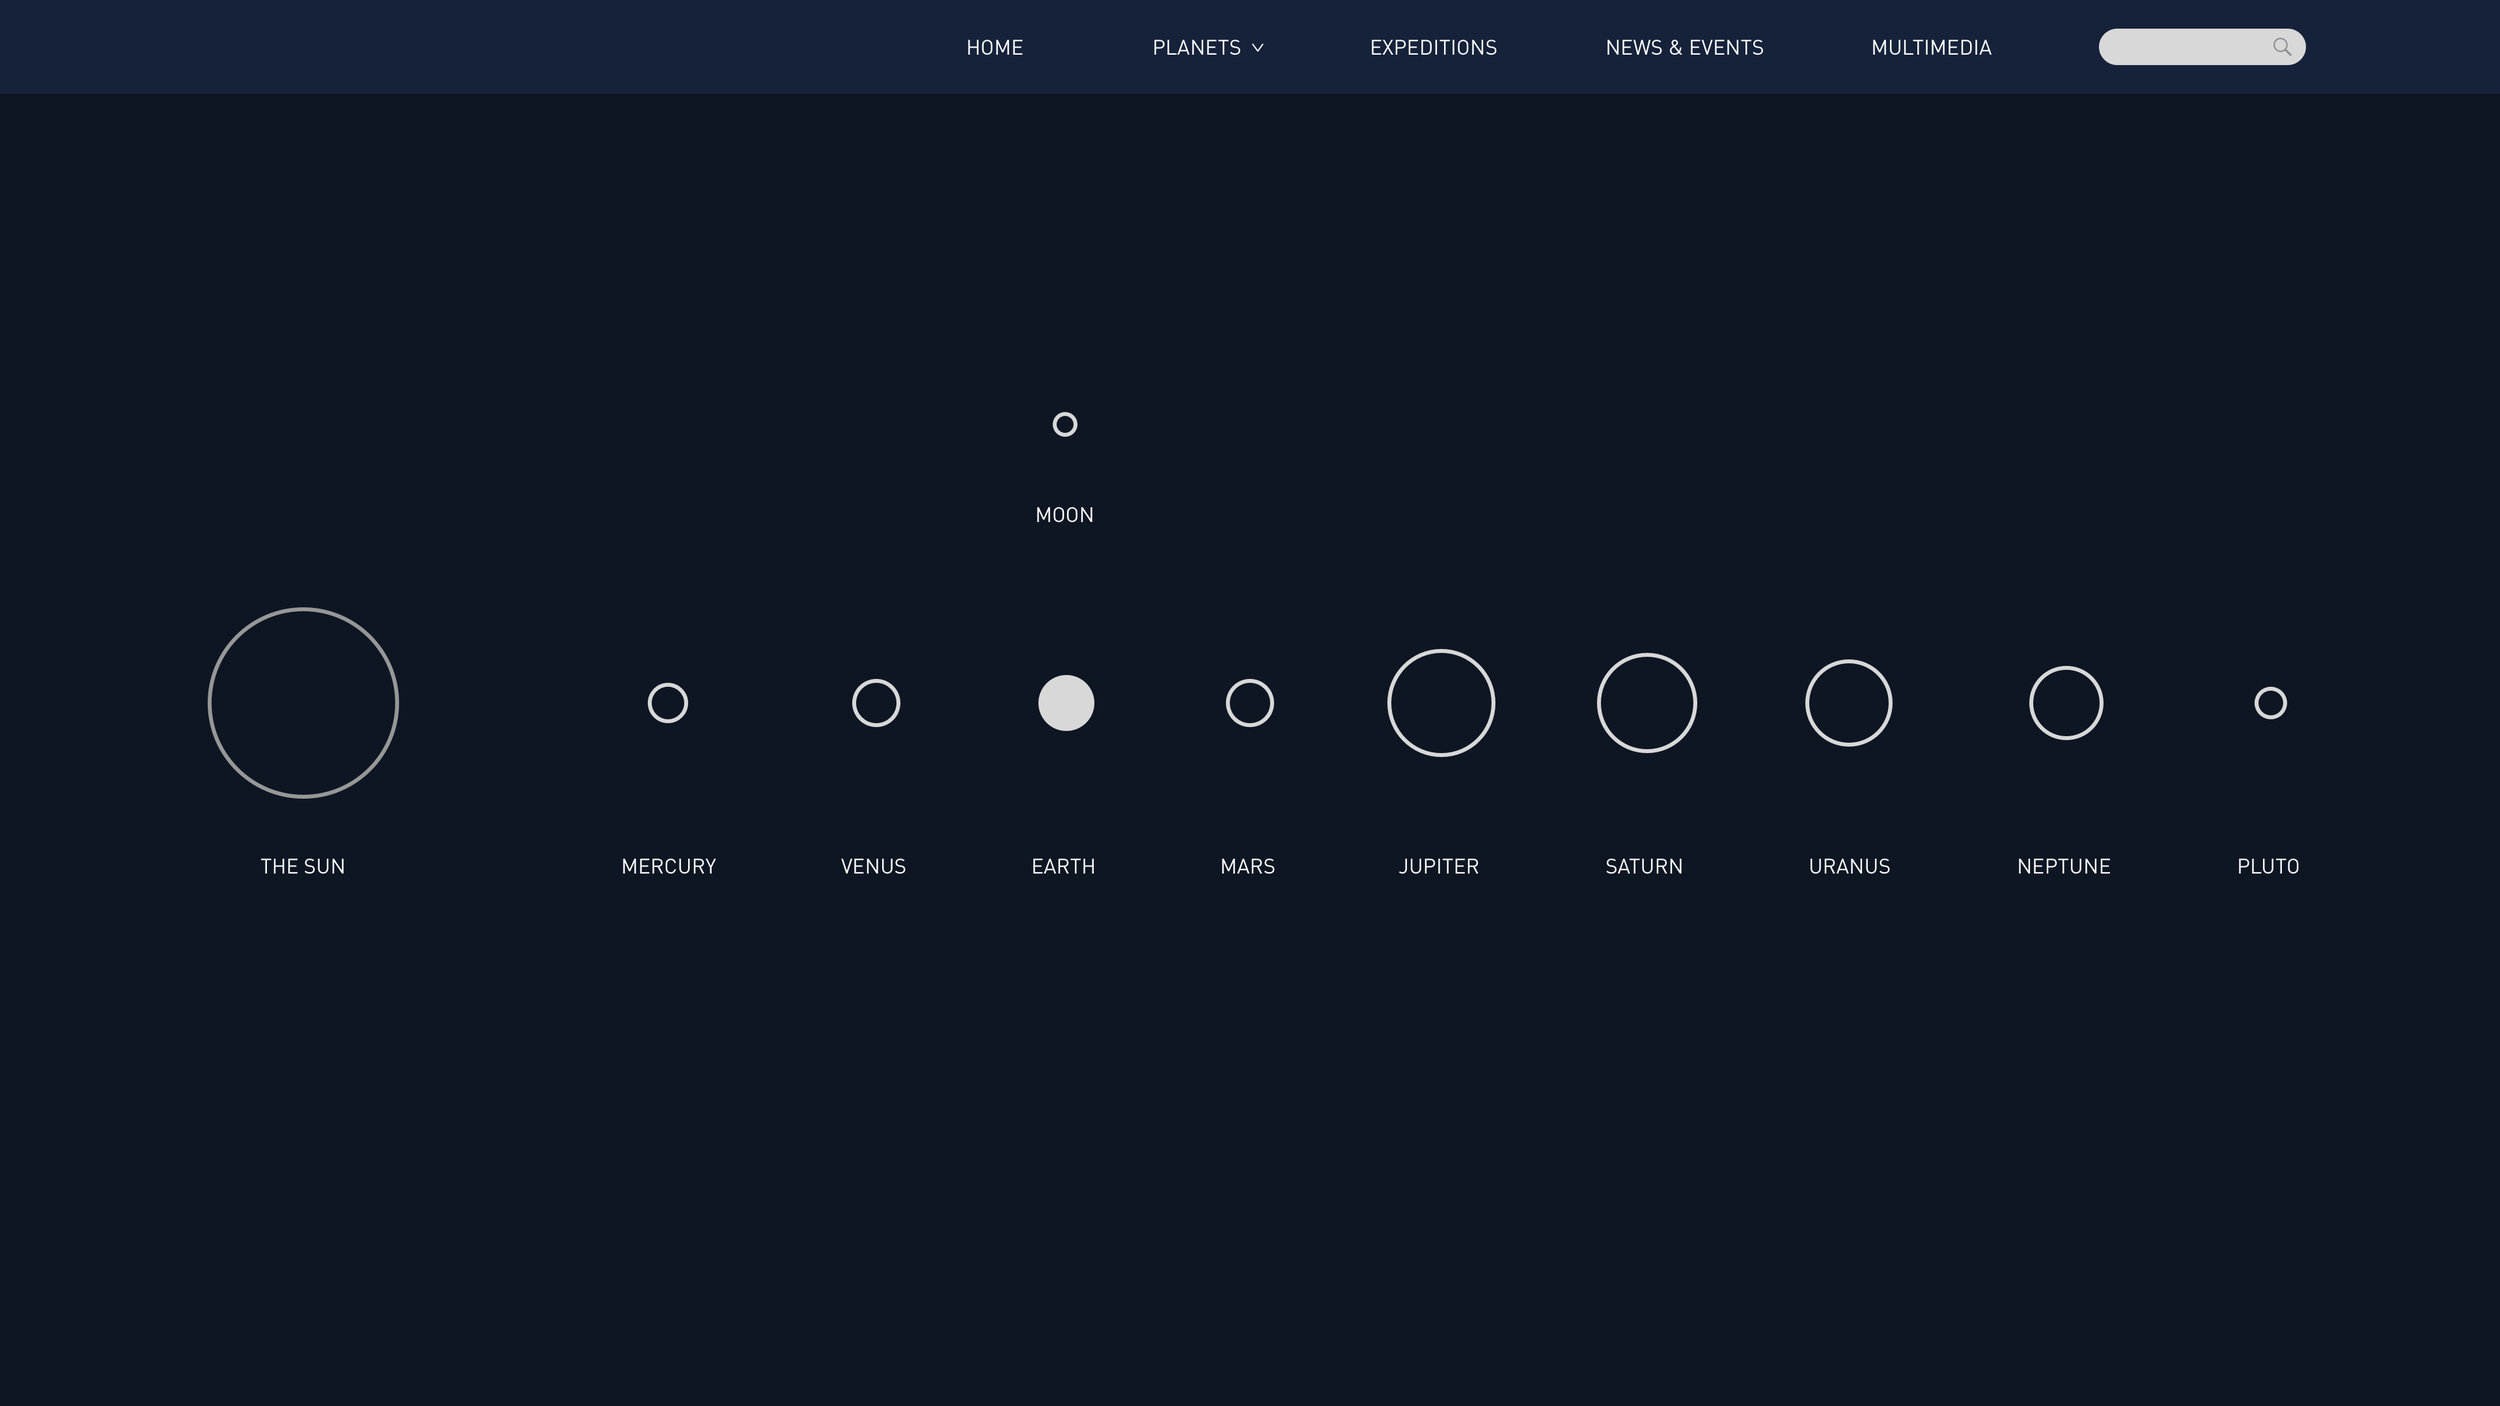 Minimalist homepage design; the user is able to select the planet that he's interested in or use the navigation menu above.